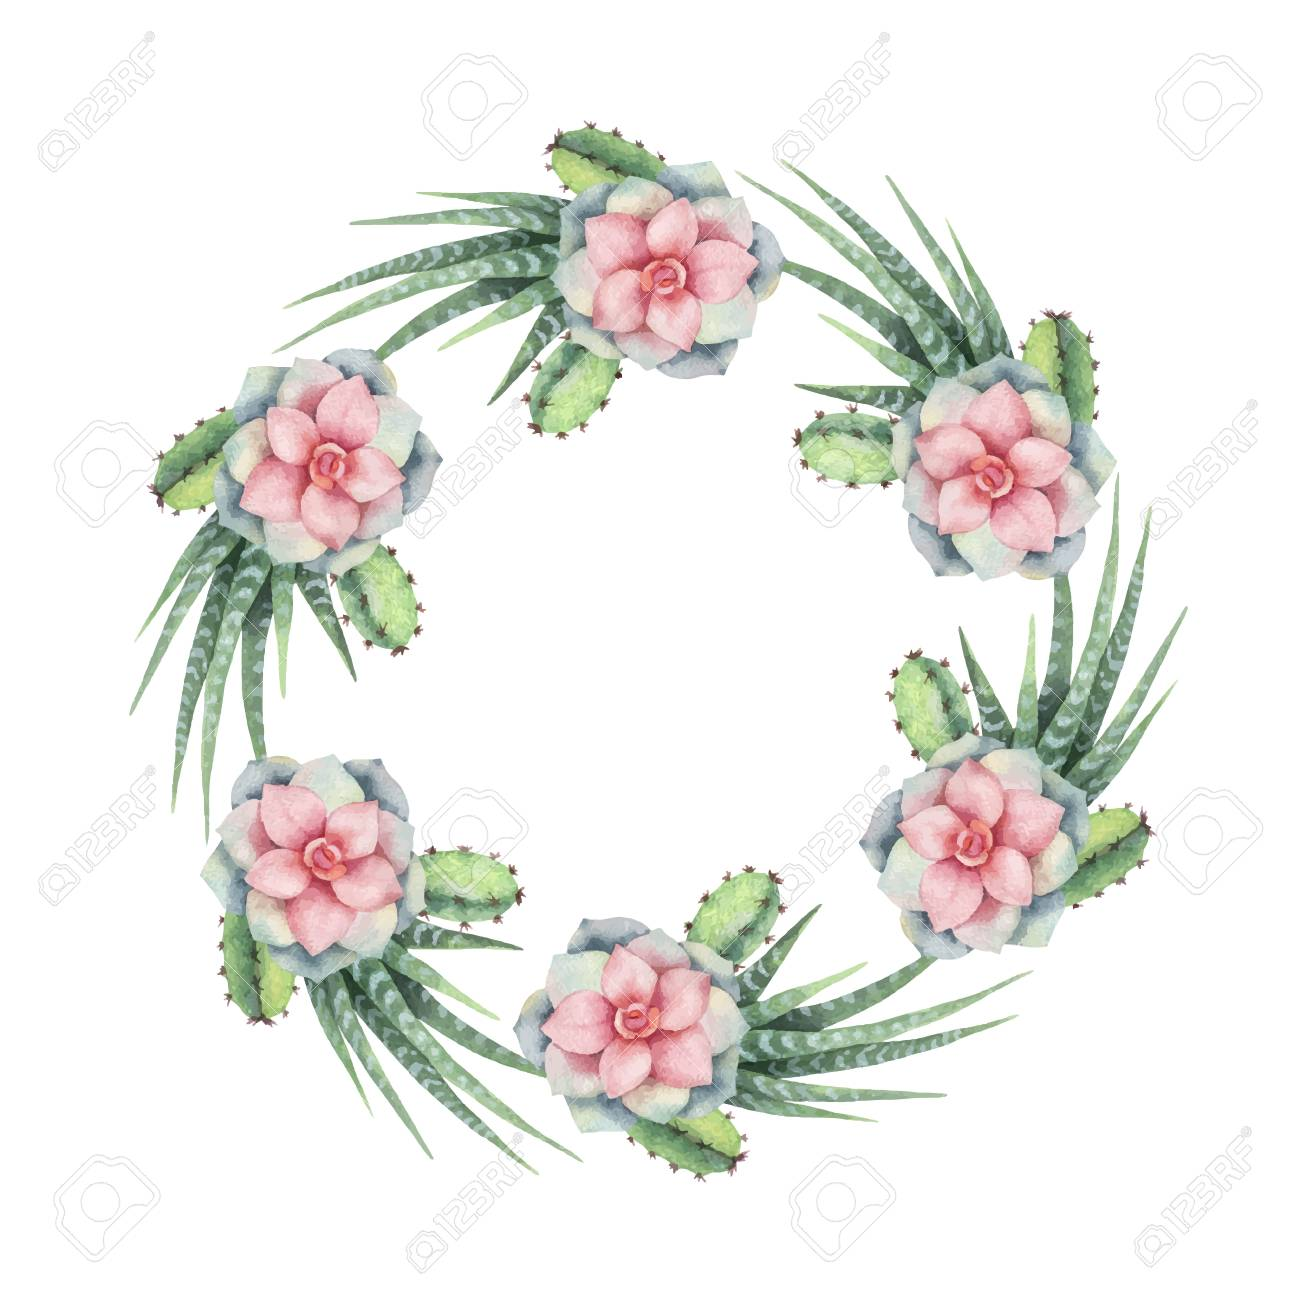 Watercolor Vector Wreath Of Cacti And Succulent Plants Isolated Royalty Free Cliparts Vectors And Stock Illustration Image 96327406